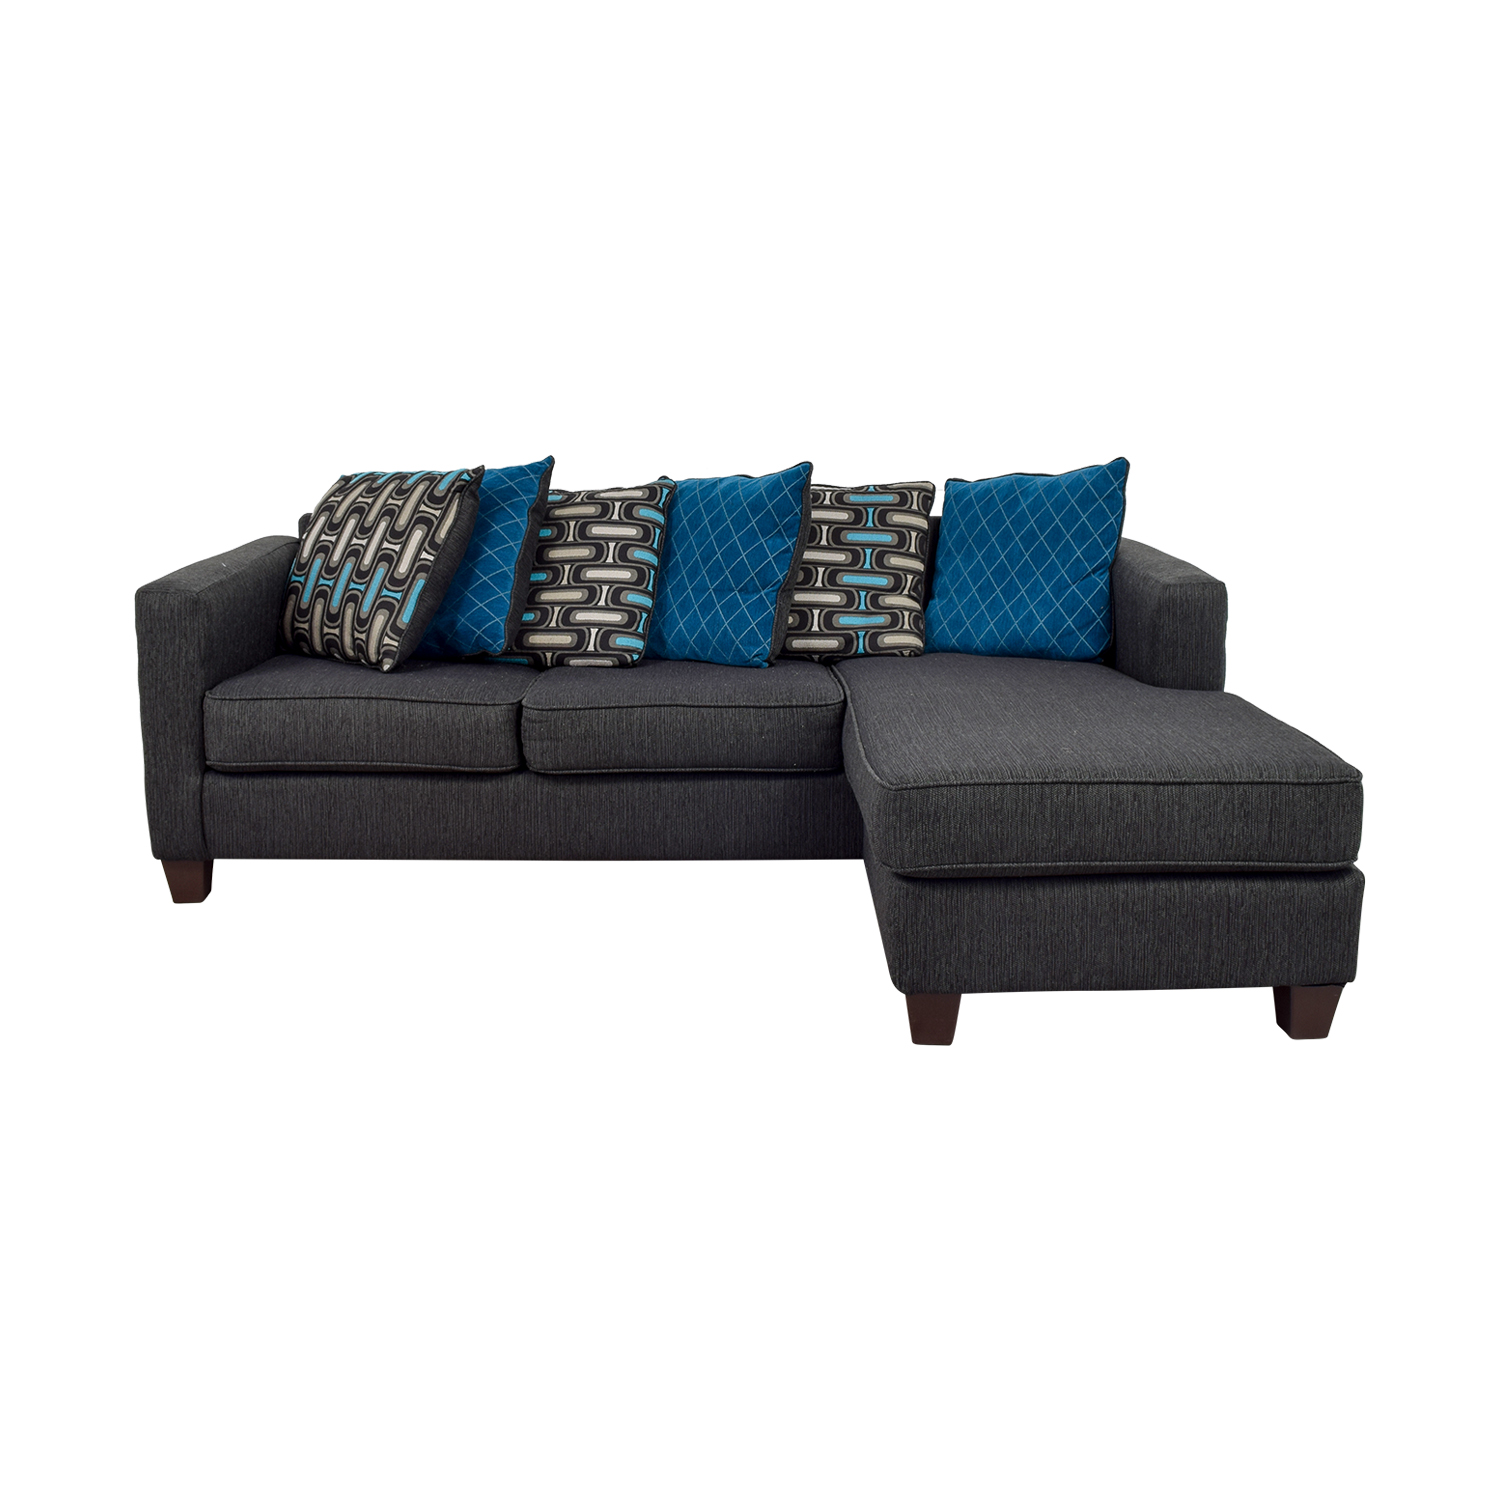 Navy Chaise Sectional with Toss Pillows